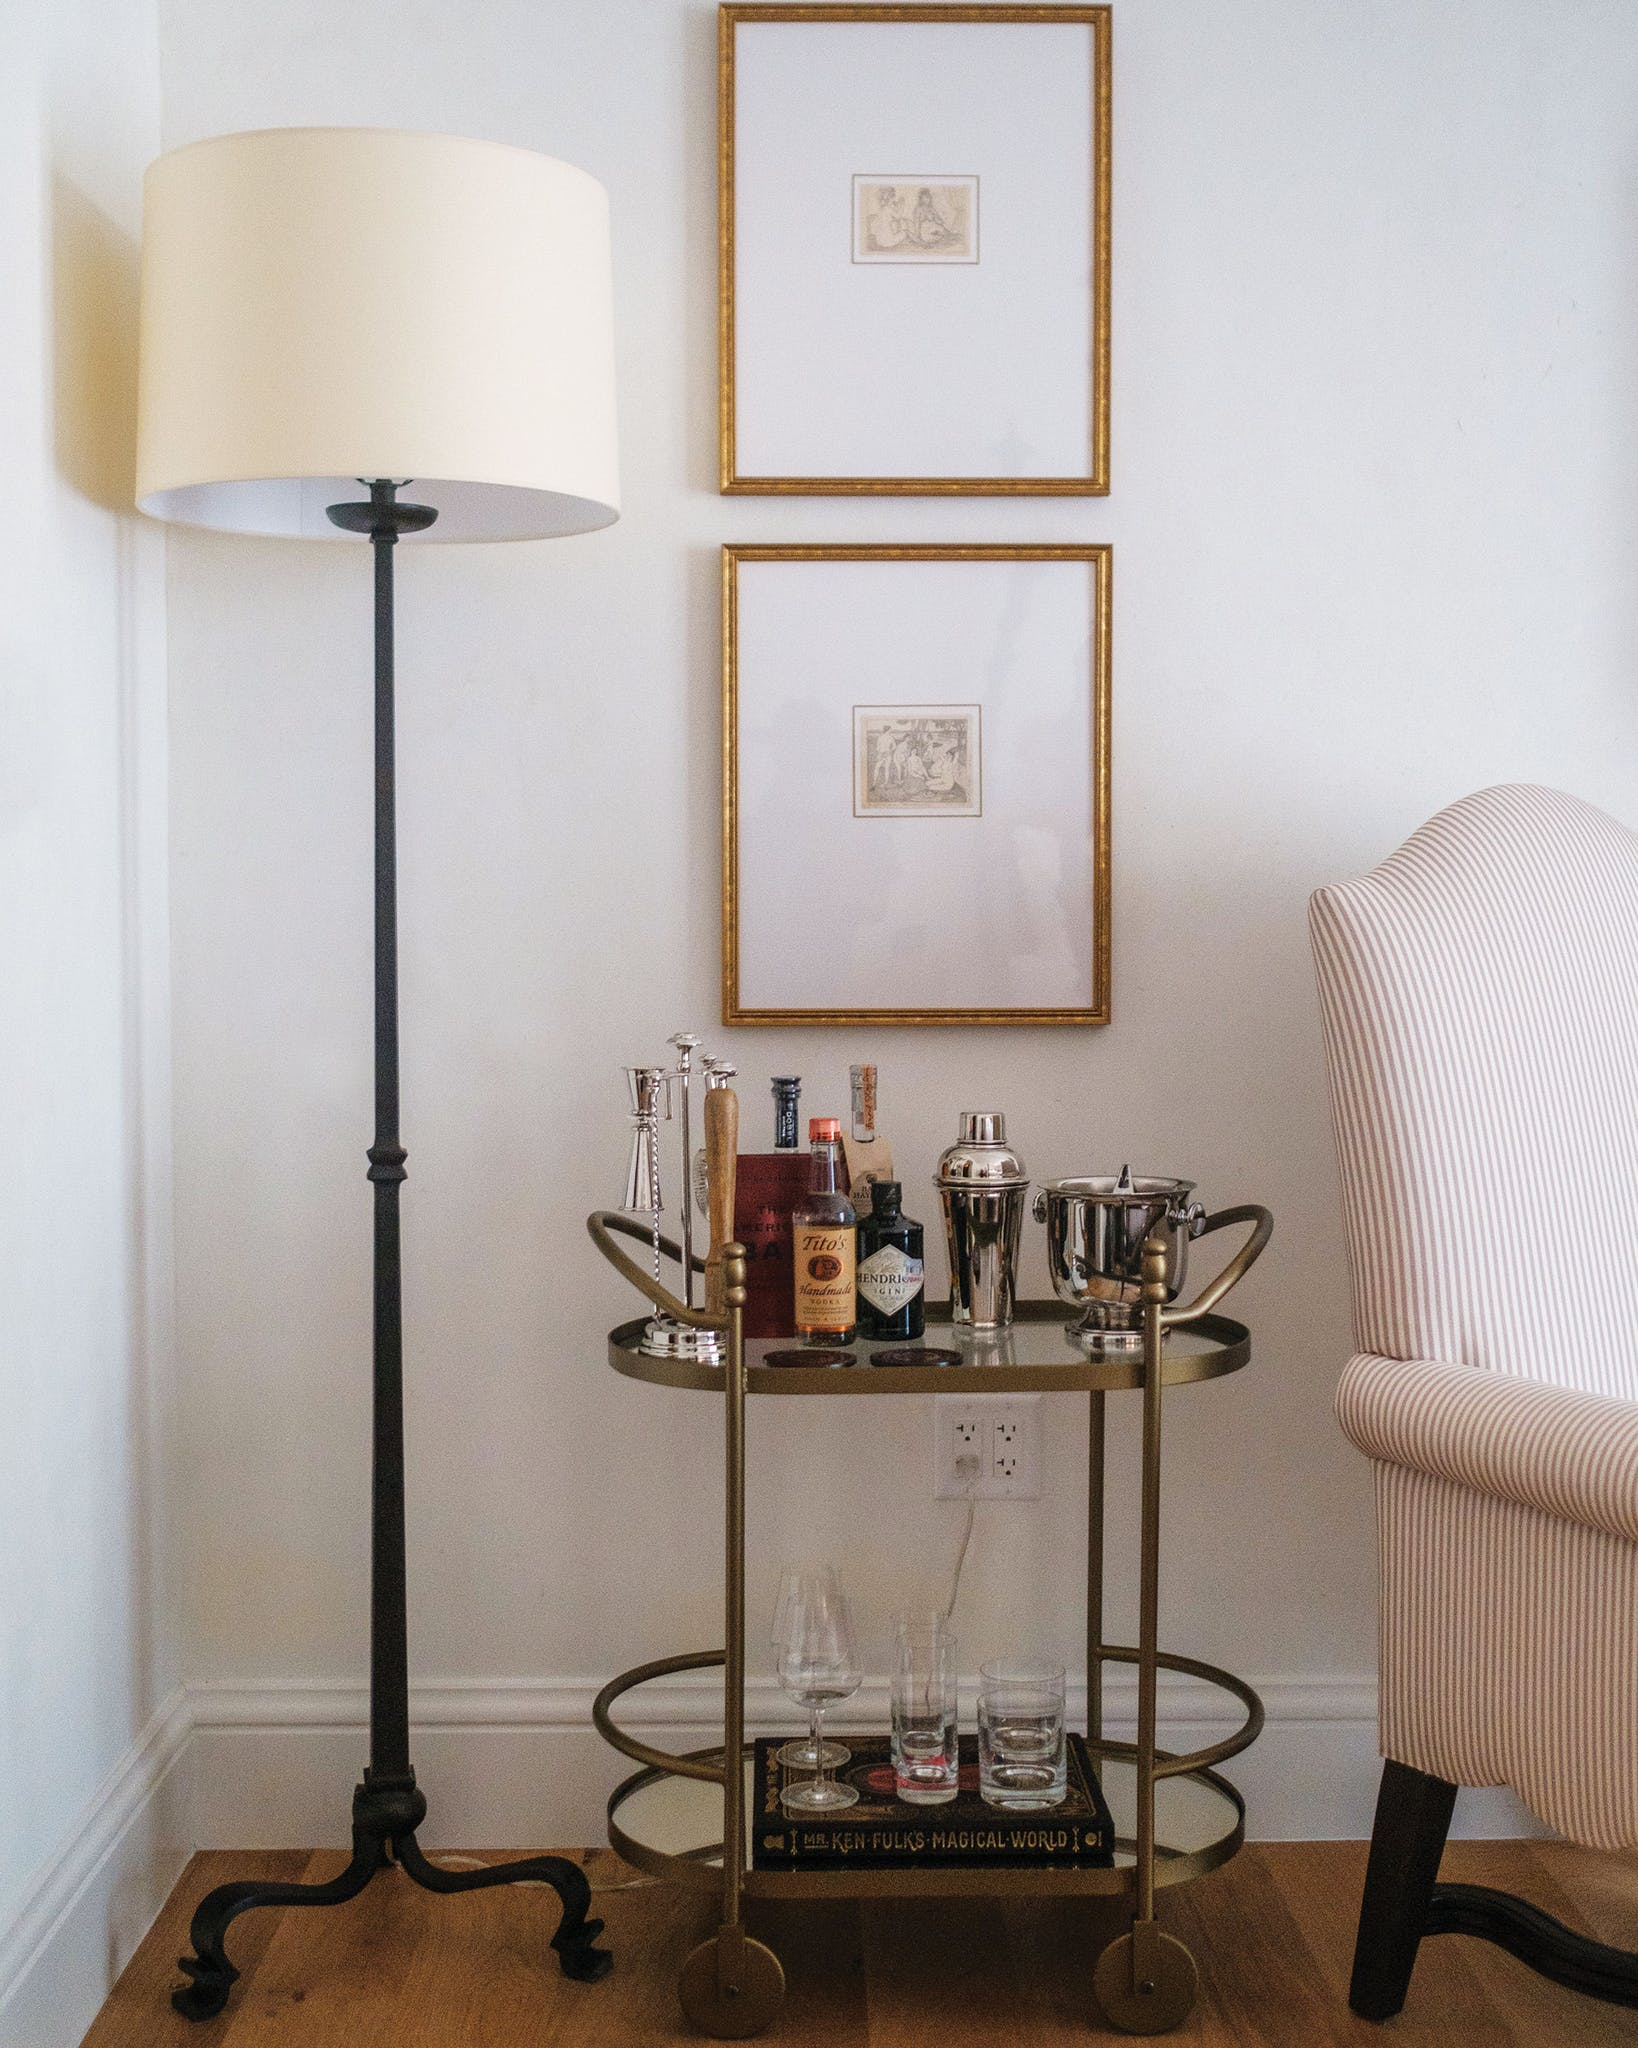 Each room is furnished with a classic, 1920s-style bar cart—featuring libations handpicked to please each guest's unique tastes—and a heavy dose of Old World charm. Notice the imperfections on the wall beyond: layered with plaster and pleasingly uneven, they echo the time-tested character of the original Italian Renaissance Revival mansion.